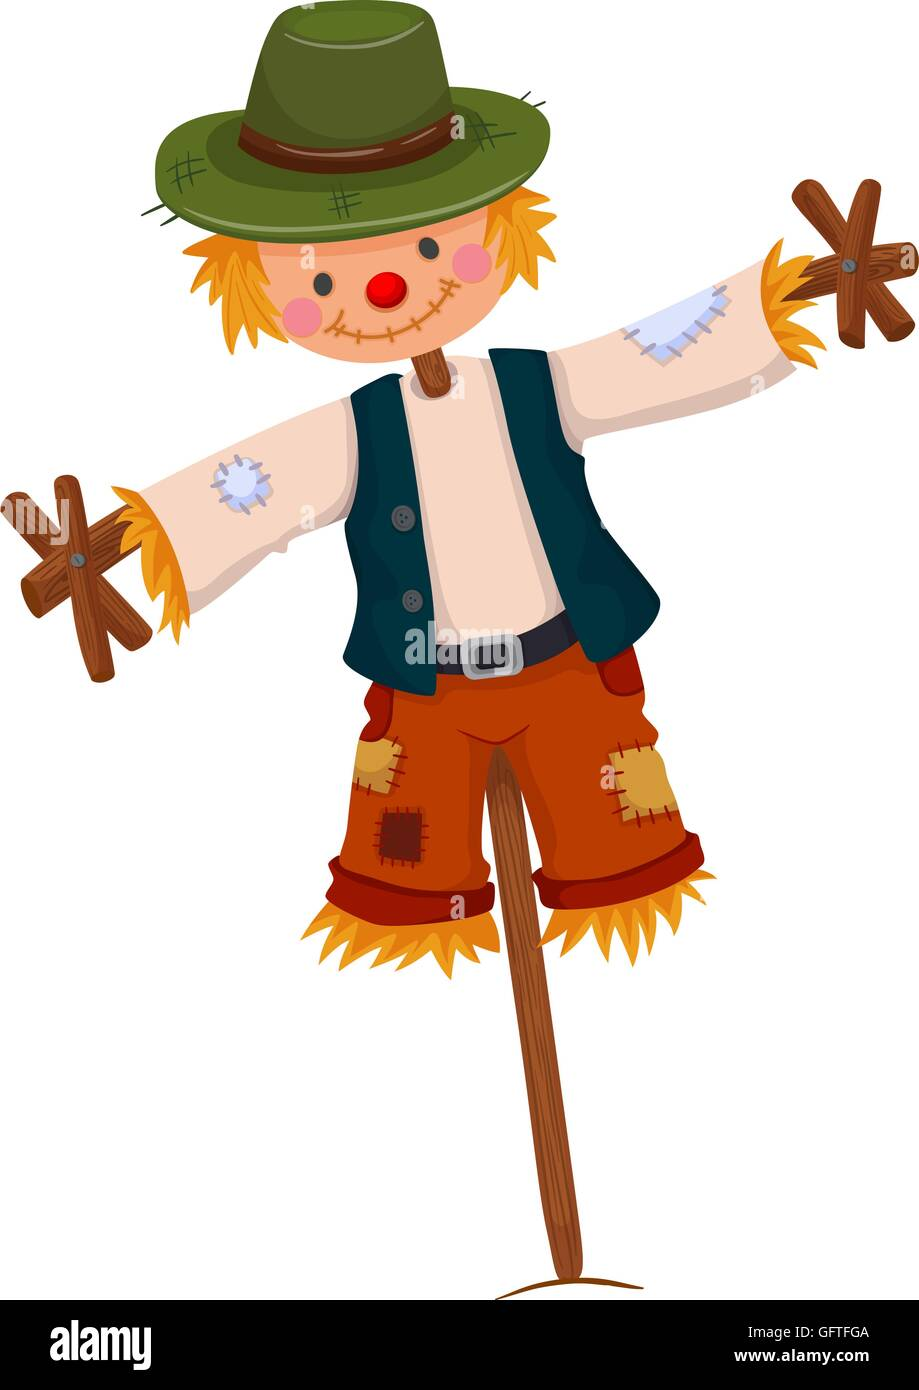 Scarecrow wearing green hat illustration - Stock Vector